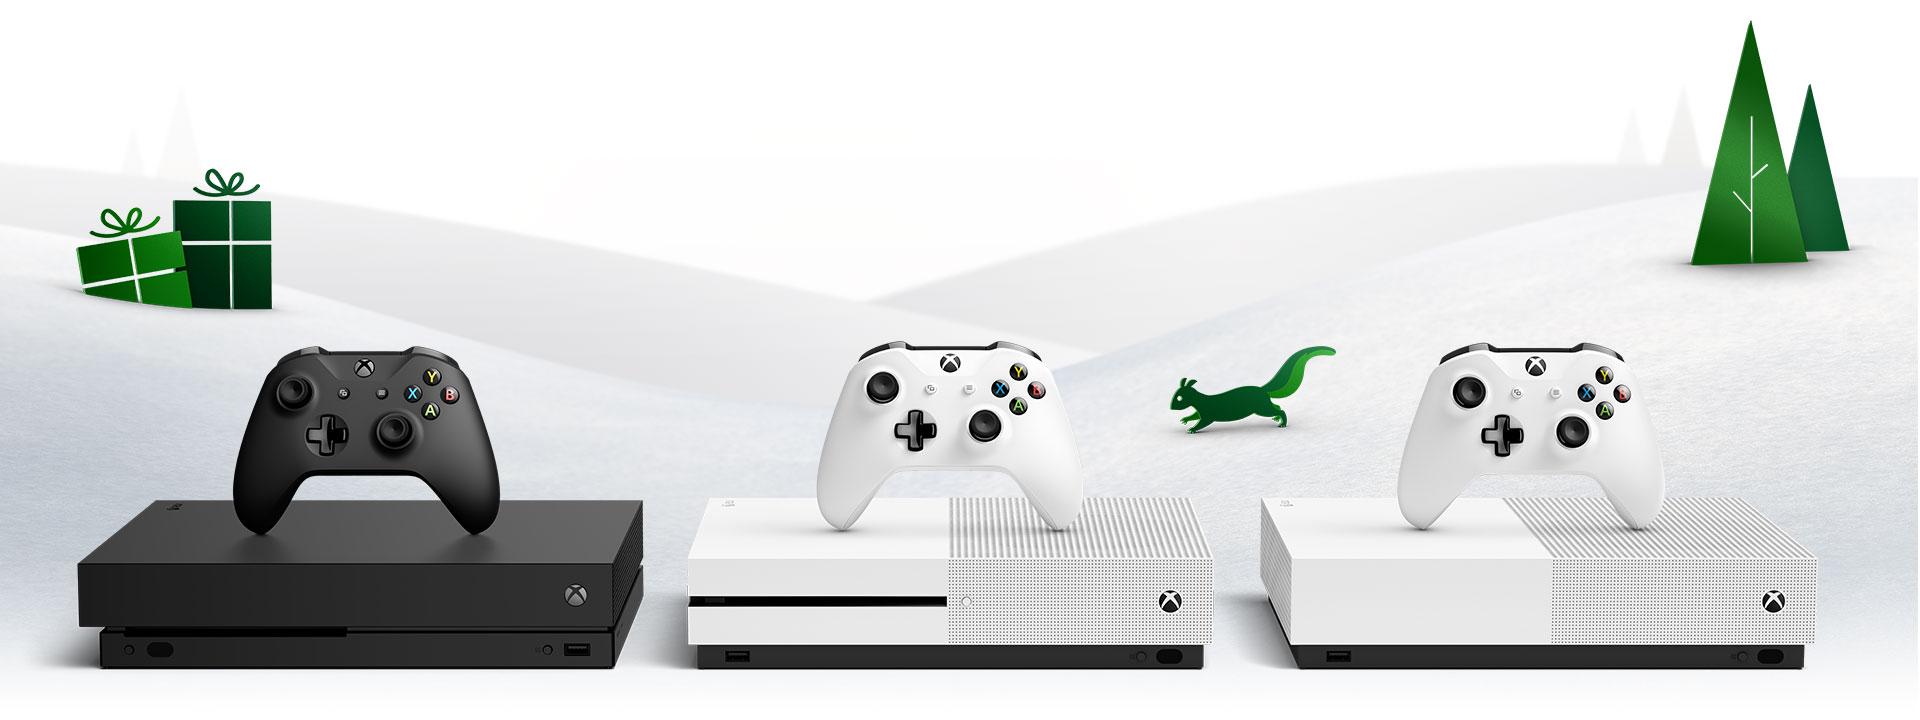 An Xbox One X, Xbox One S, and Xbox One S All-Digital Edition featured in a snowy scene.